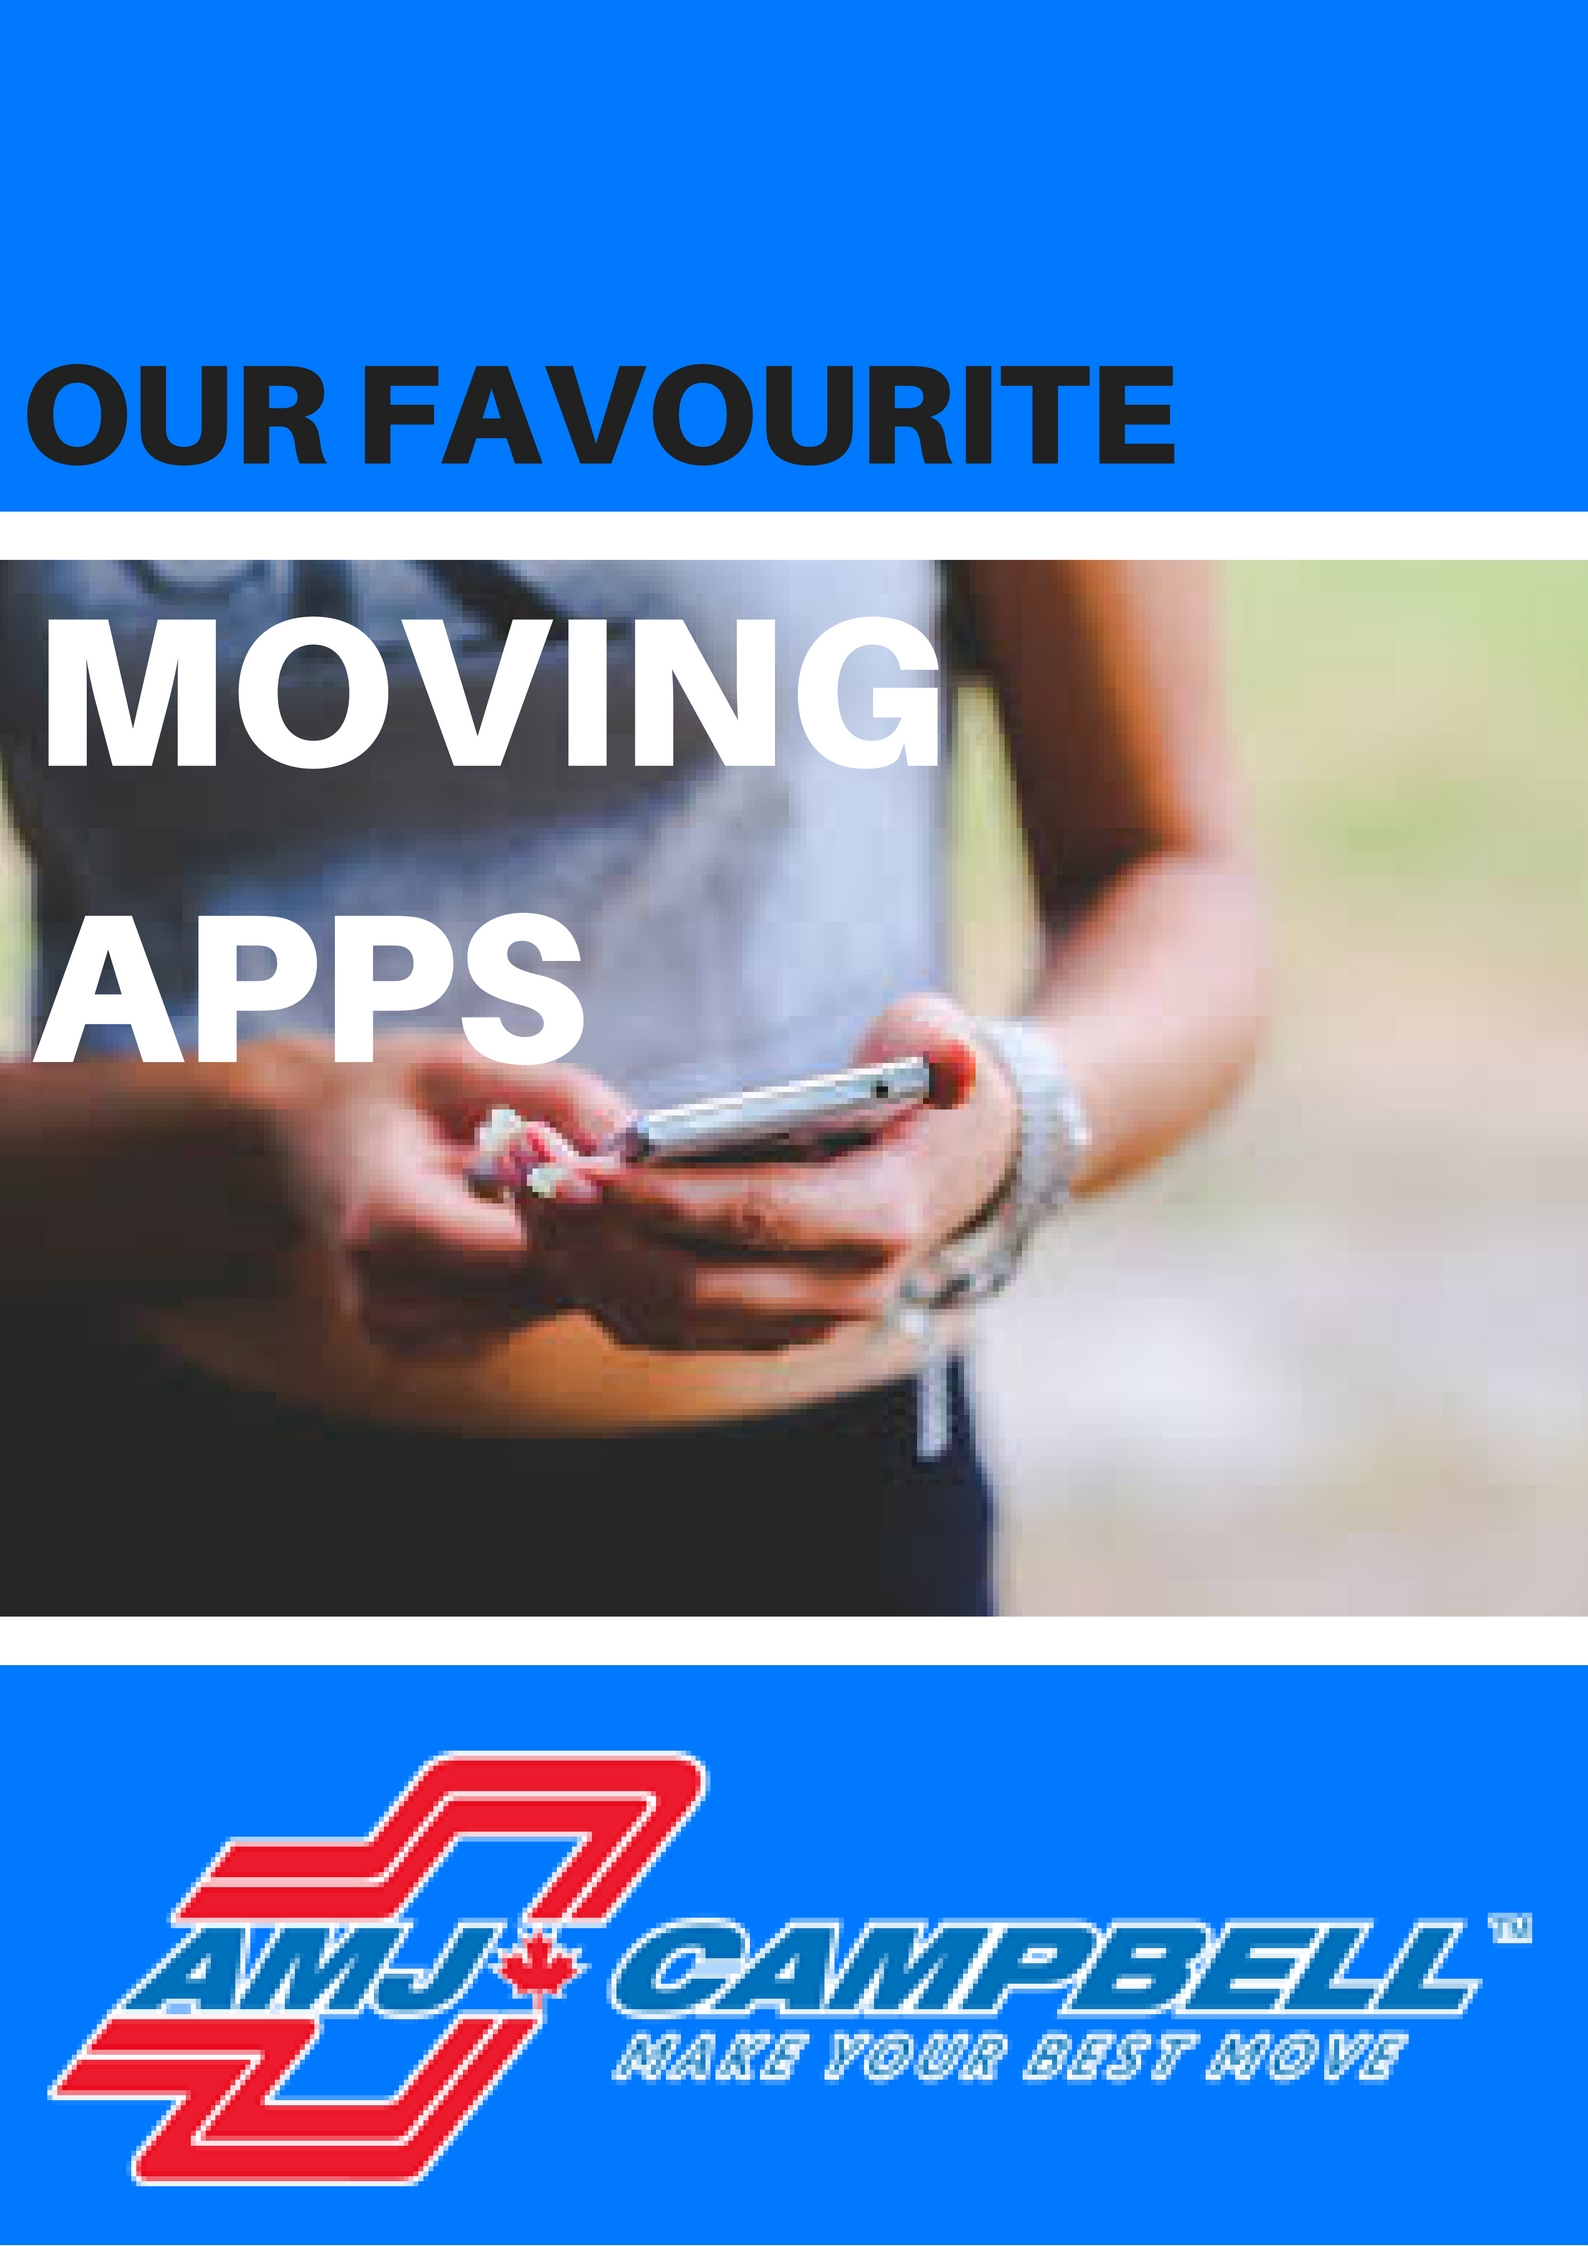 Our Favorite Moving Apps!